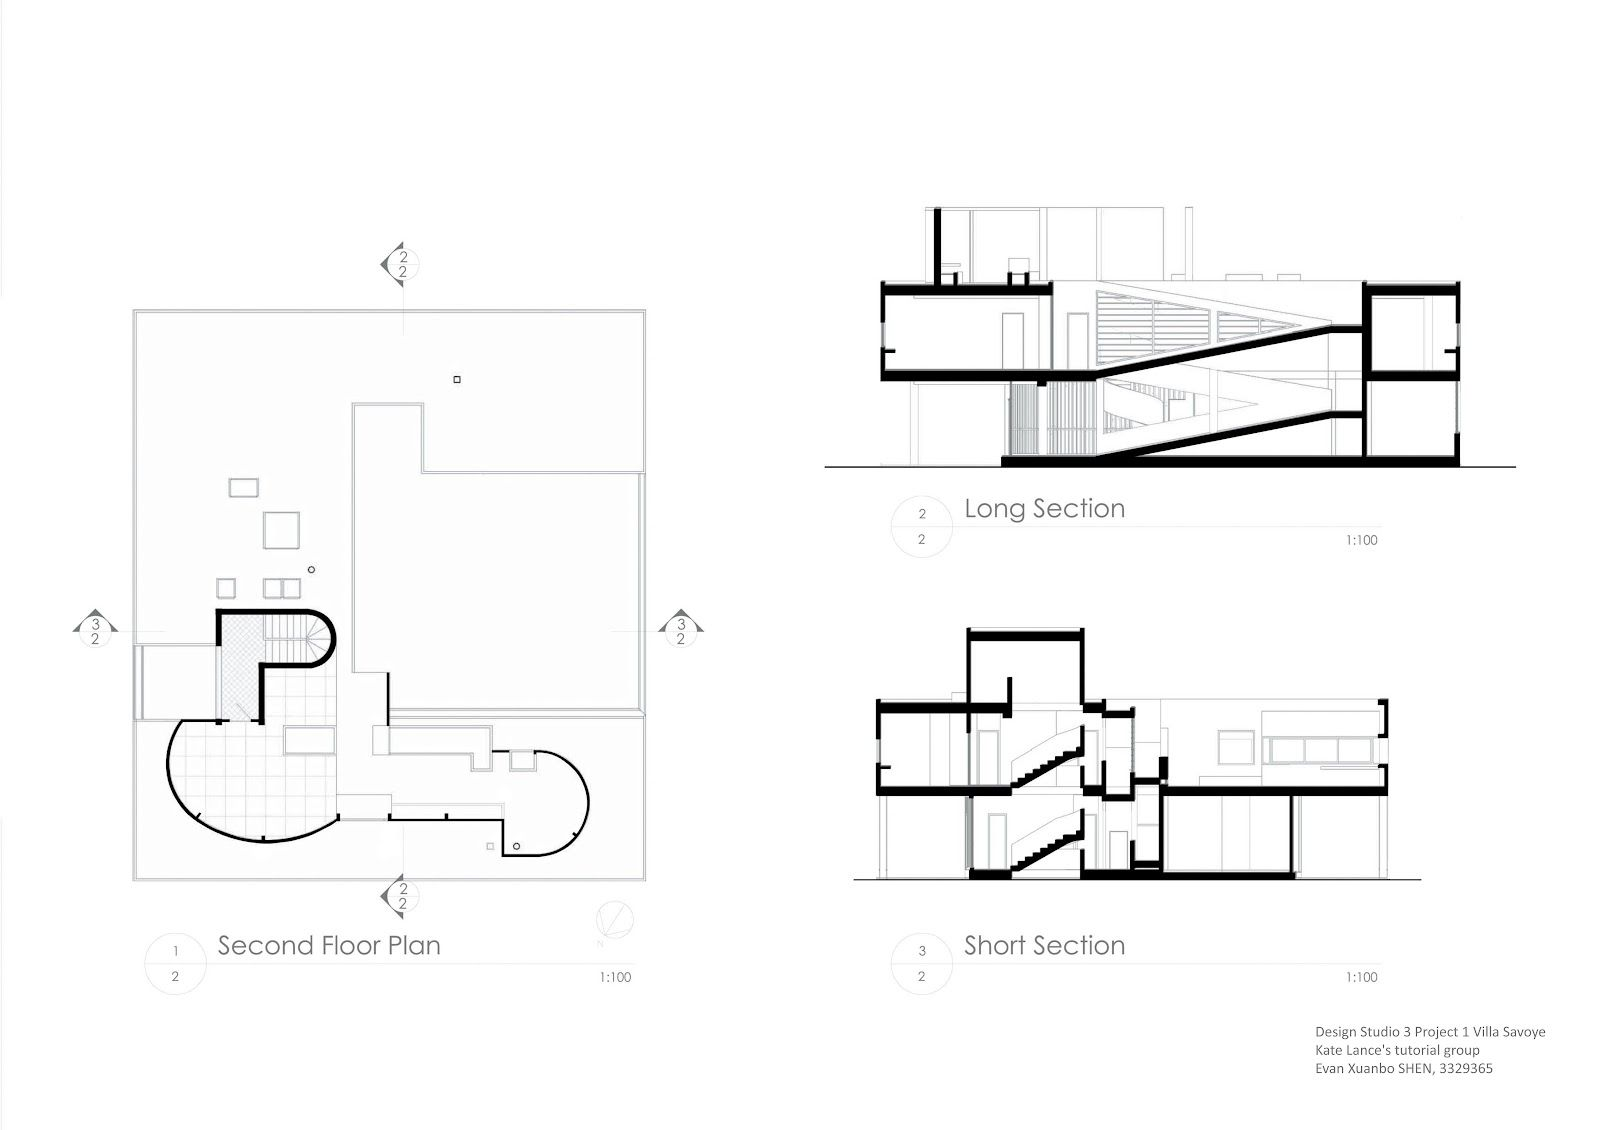 Le Corbusier Redrawn The Houses Pdf